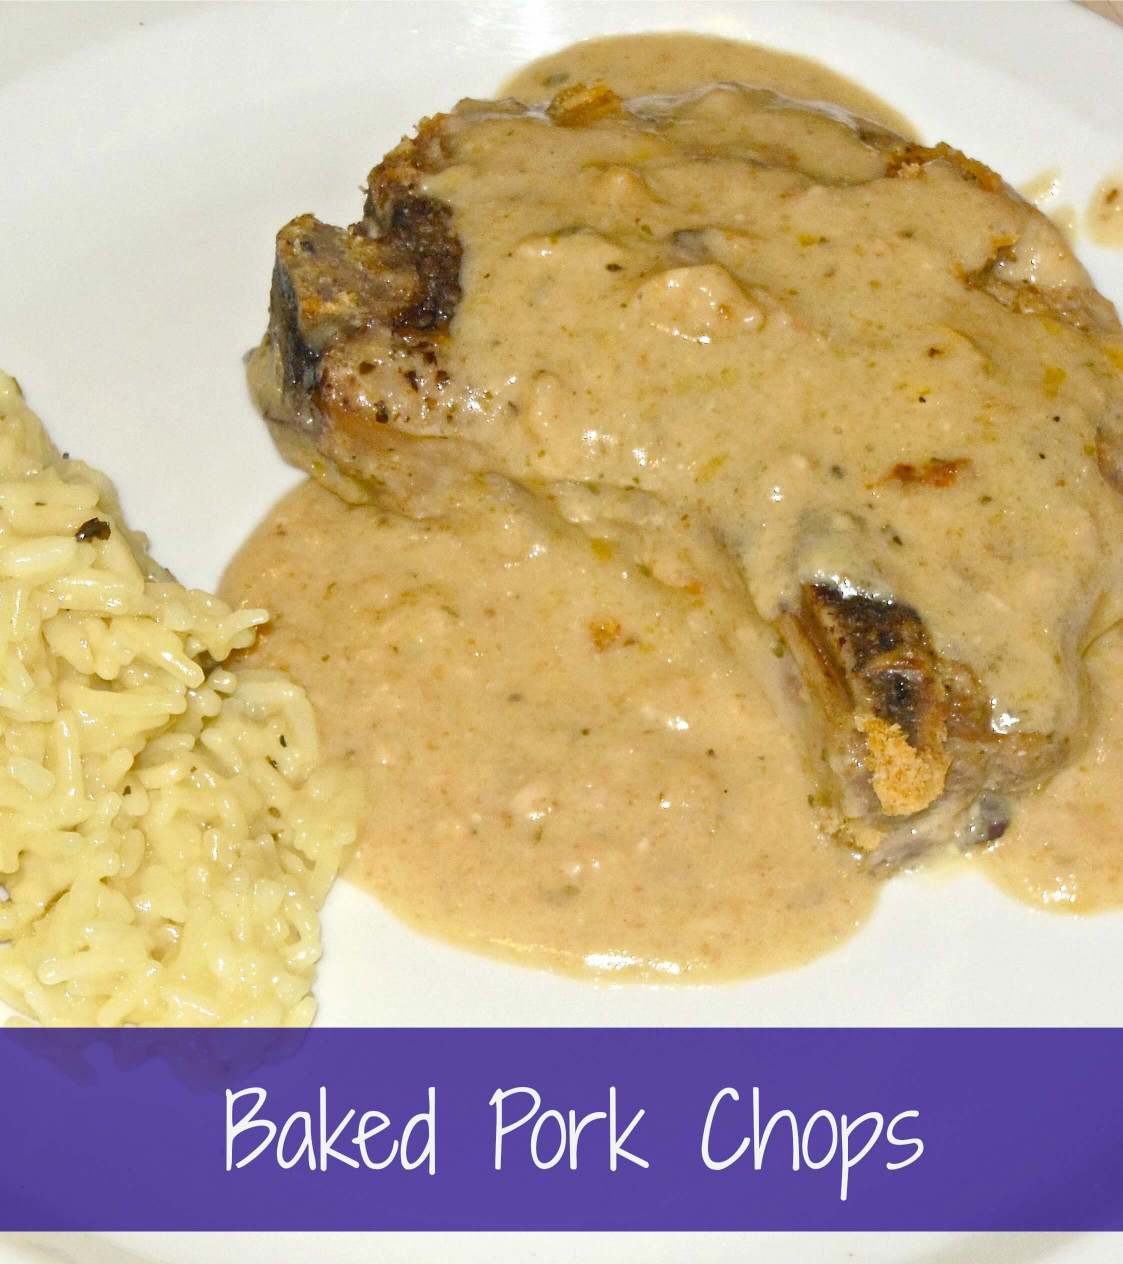 Baked Pork Chops  Delicious Baked Pork Chops in a Low Fat Creamy Sauce